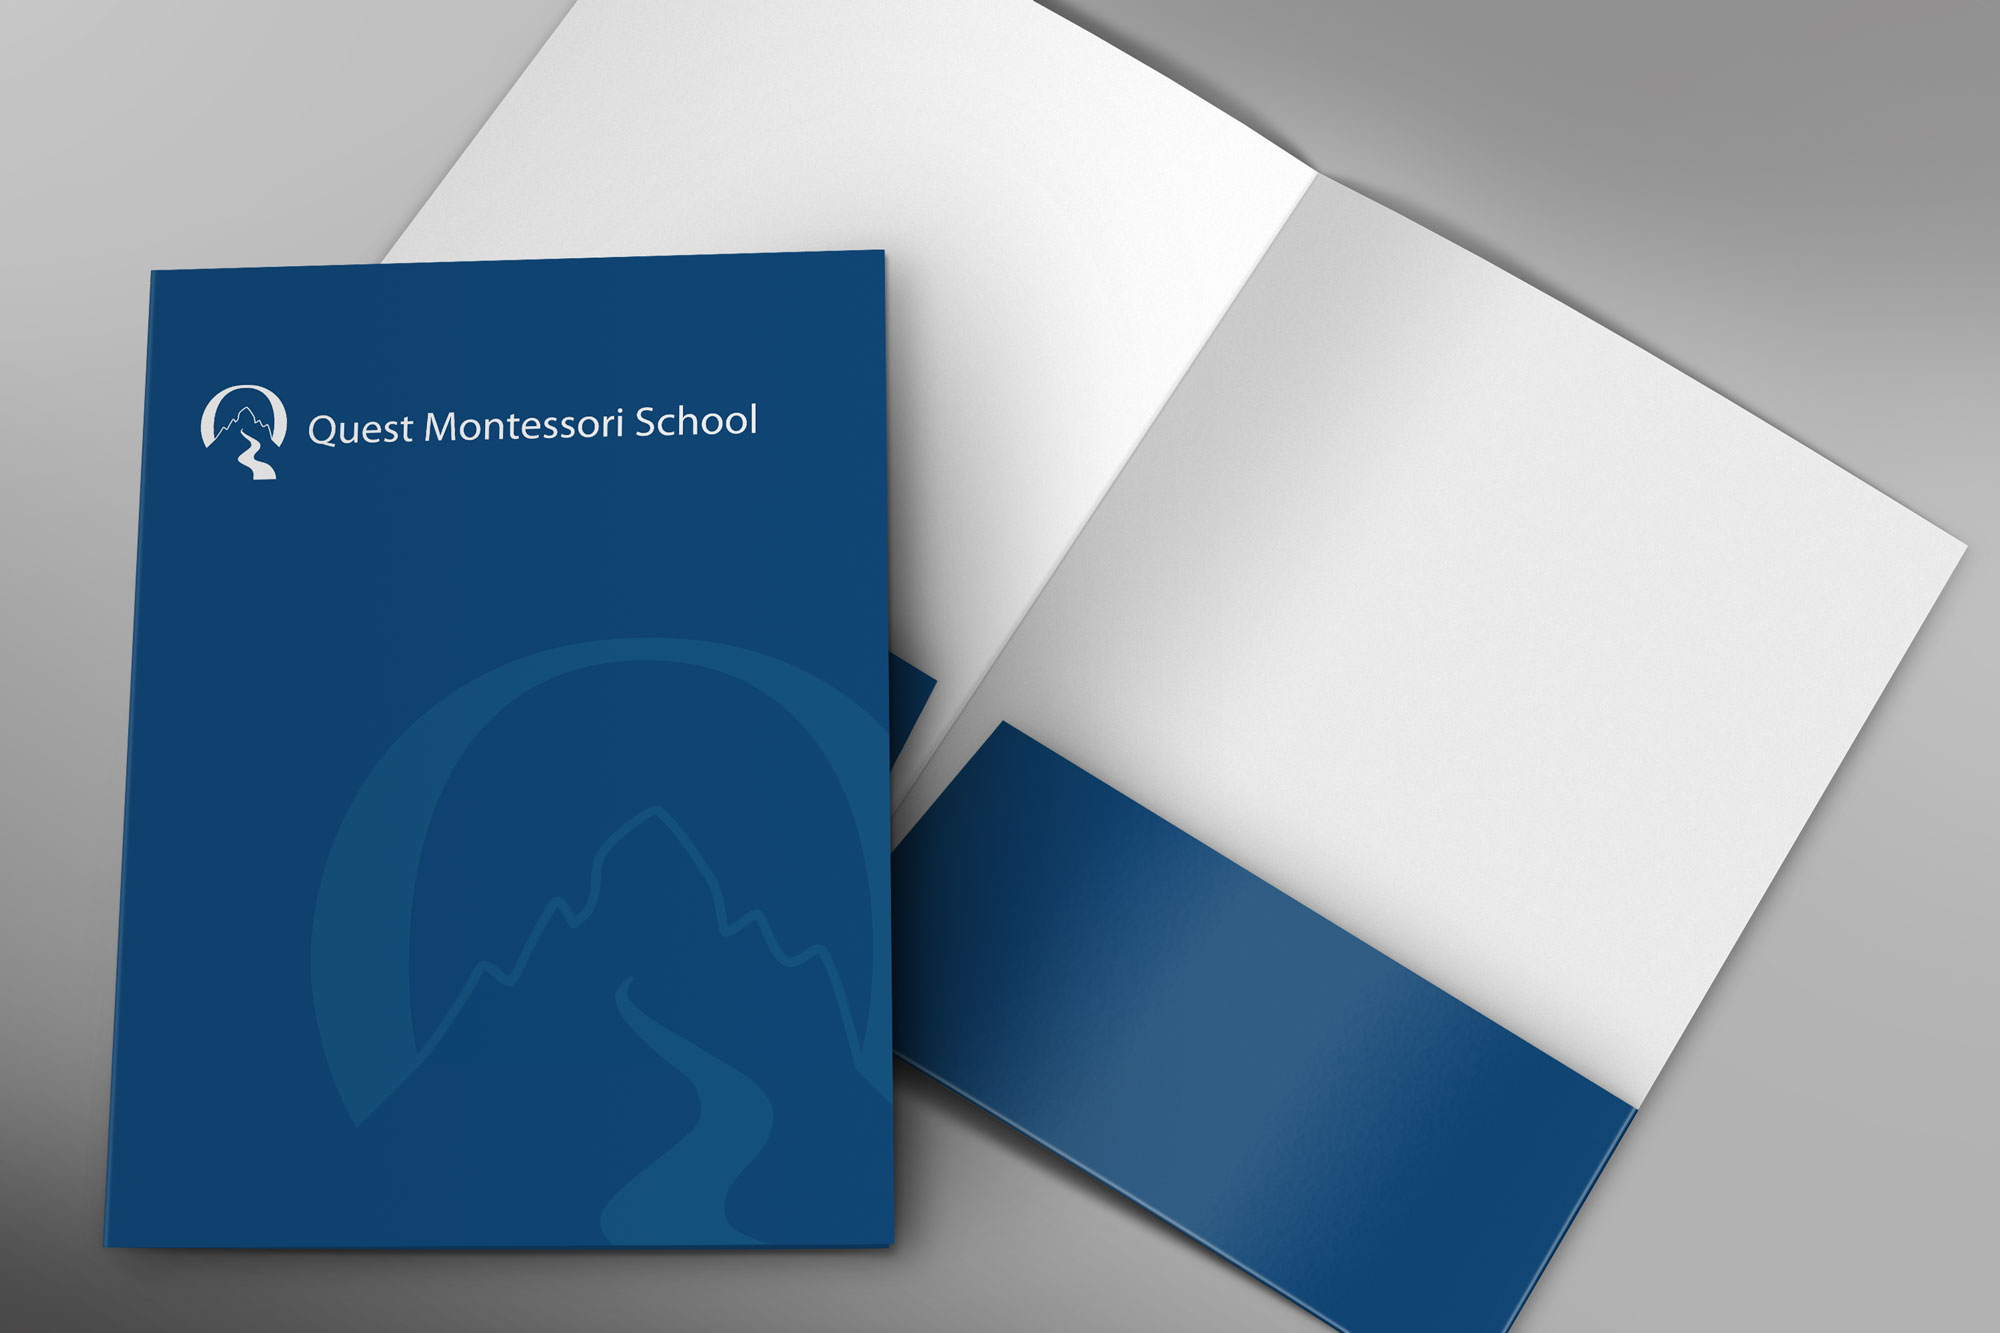 Quest Montessori School Blue Folder.jpg